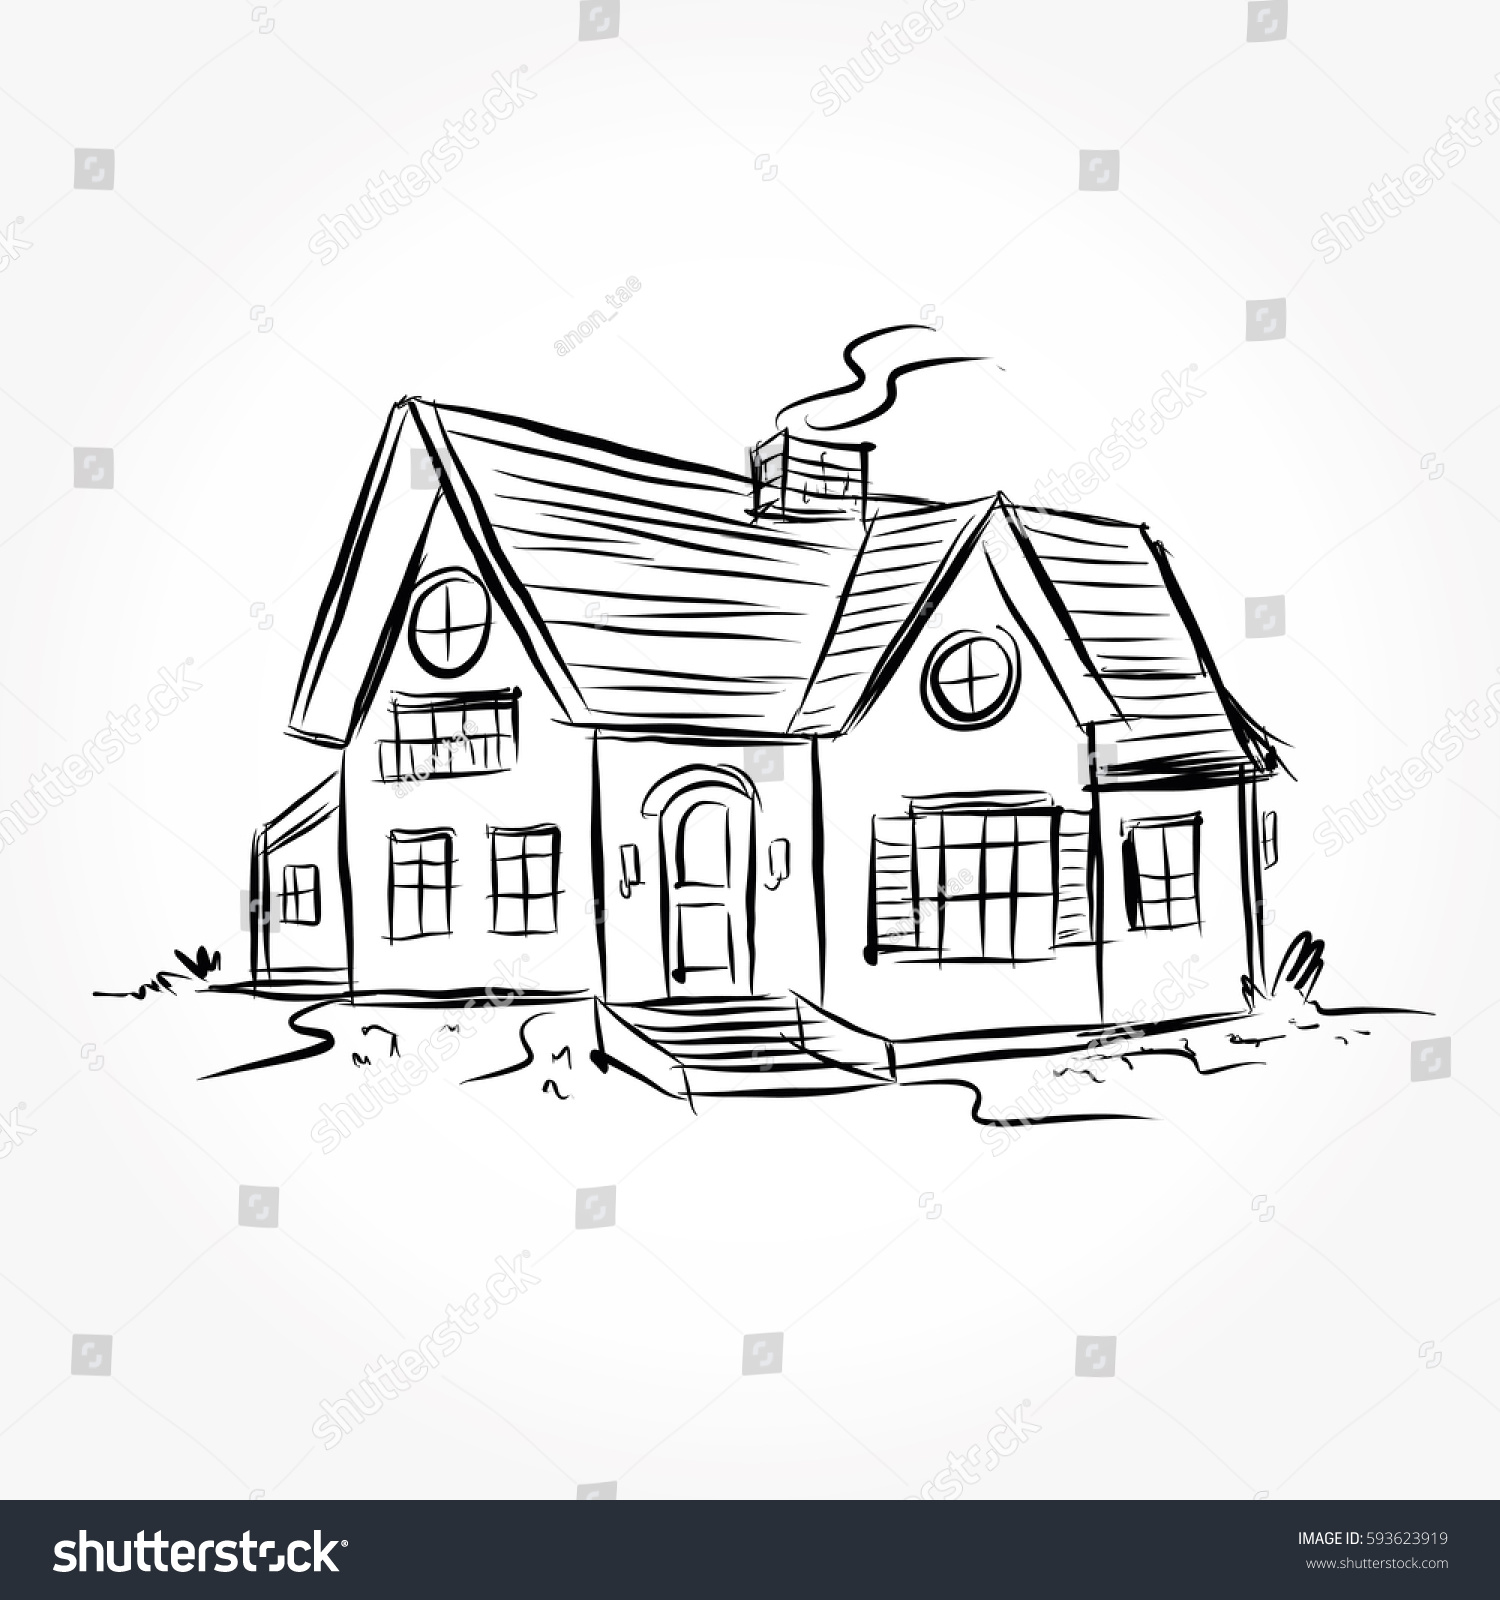 Sketch house architecture drawing free hand stock vector for Sketch online free